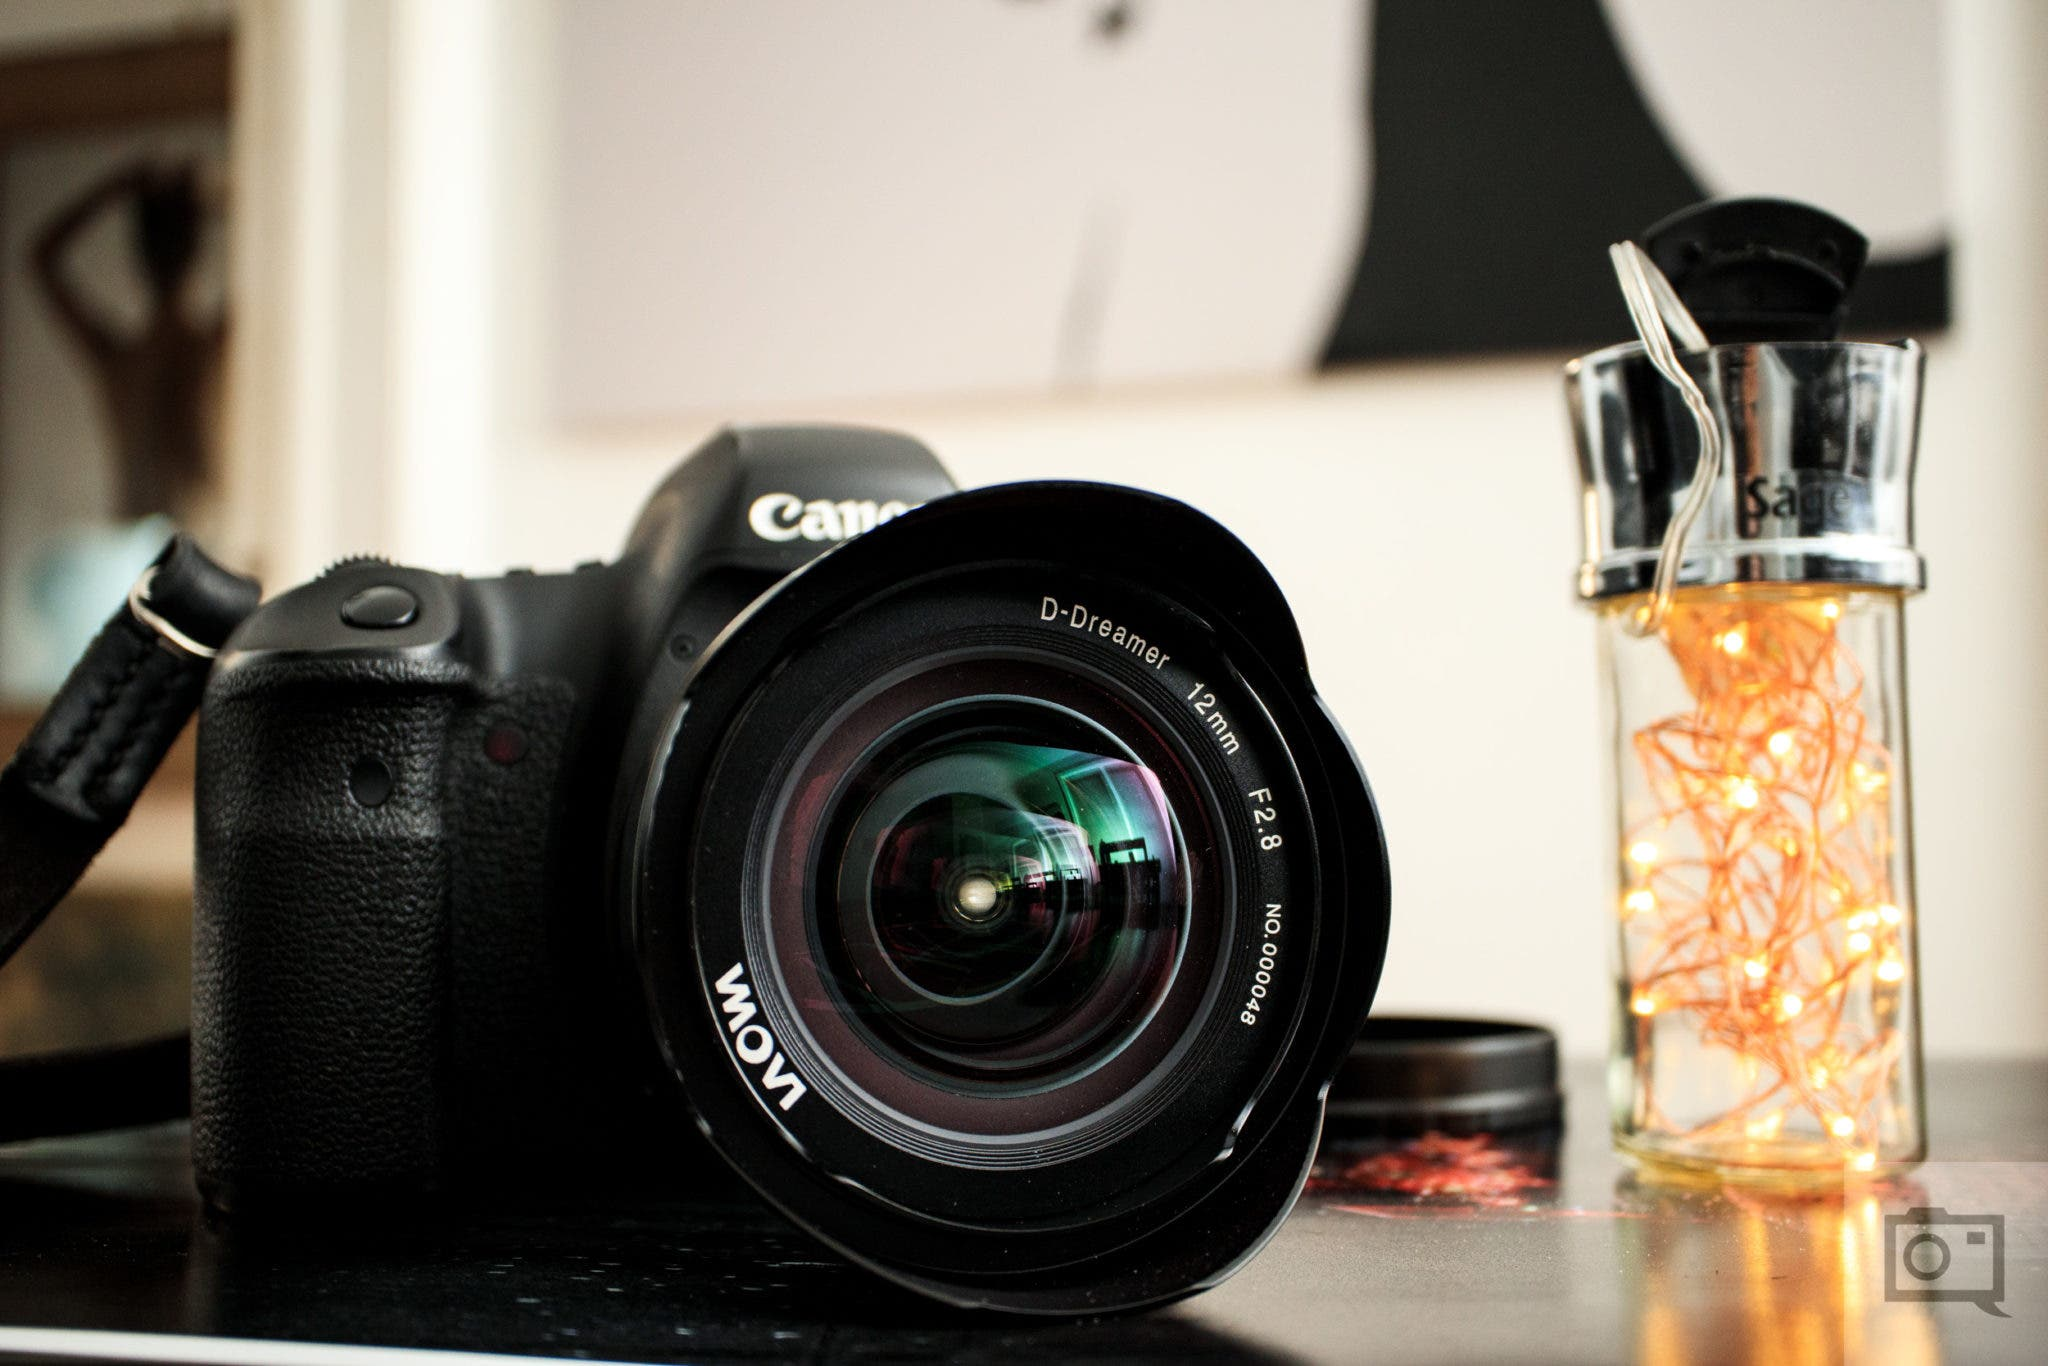 Review: Venus Optics Laowa 12mm f2.8 (Canon EF)